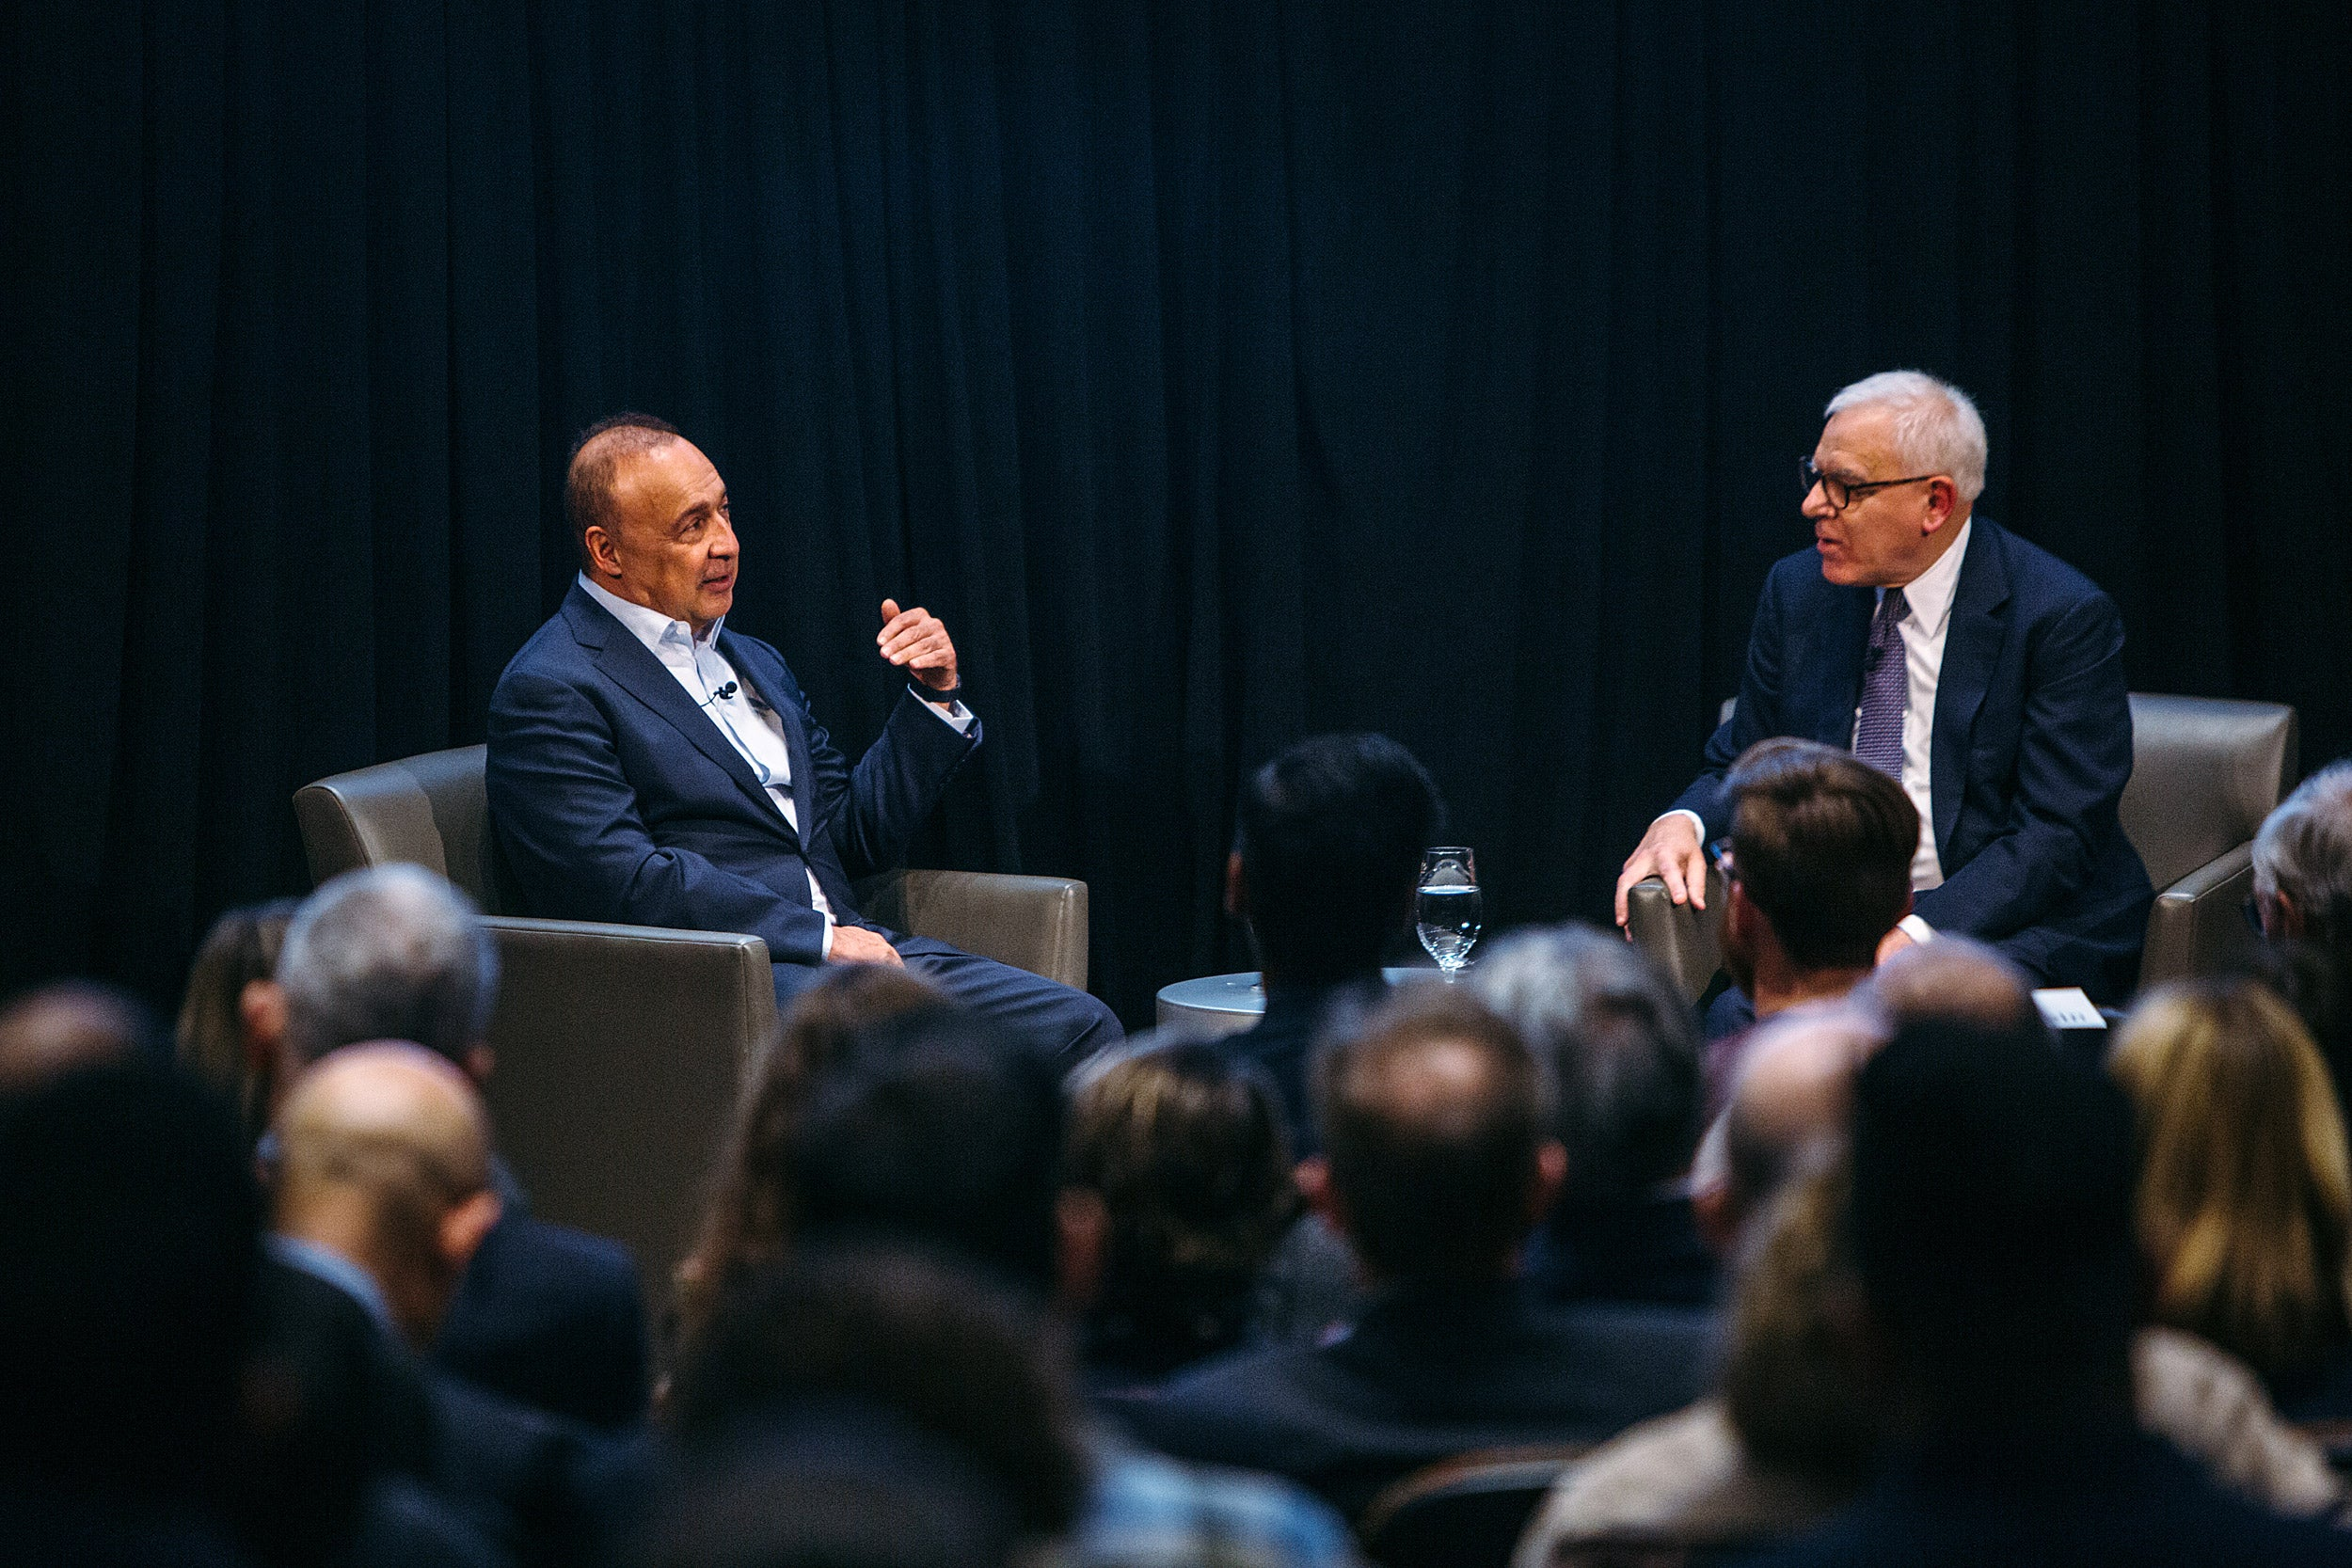 Len Blavatnik and Harvard Corporation member David Rubenstein